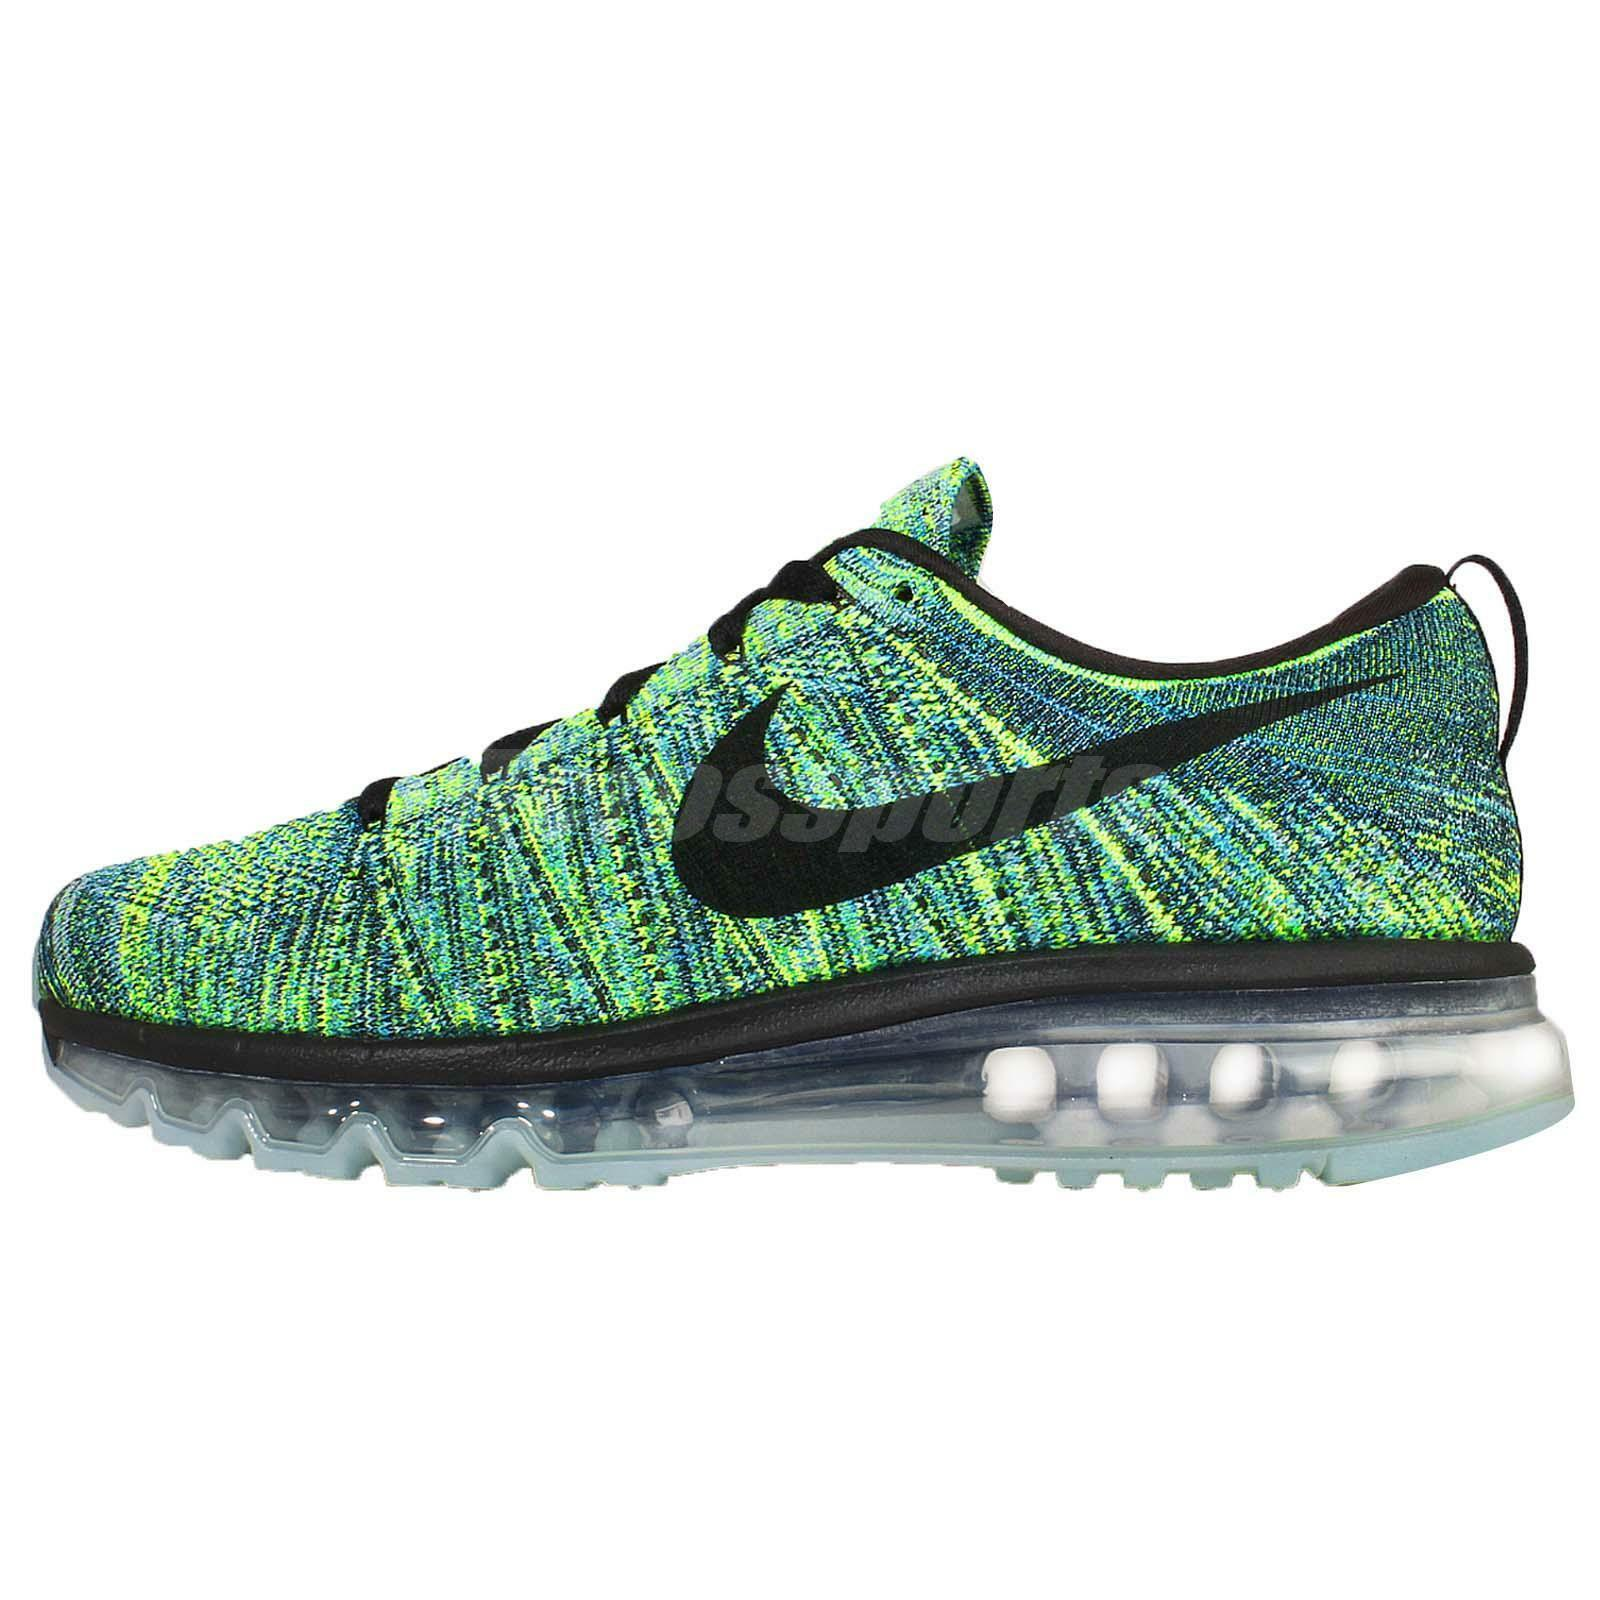 NEW 2018 NIKE FLYKNIT MAX RUNNING SHOES BLACK/BLUE LAGOON SIZE 8 Price reduction Seasonal price cuts, discount benefits